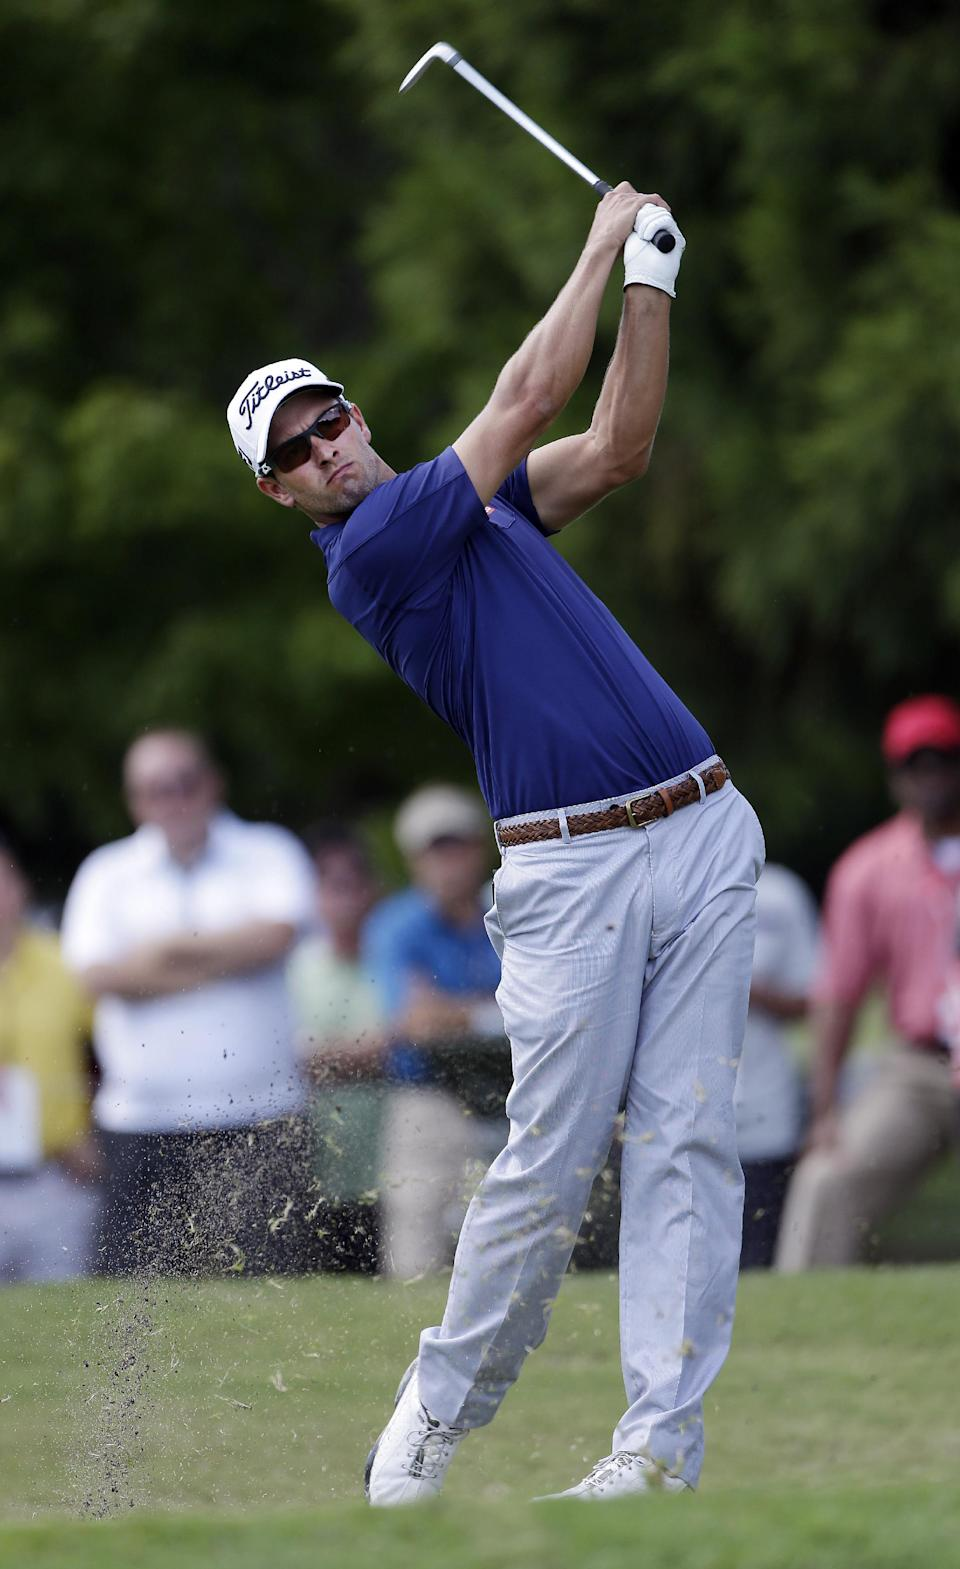 With one fewer club, Stenson takes 4-shot lead